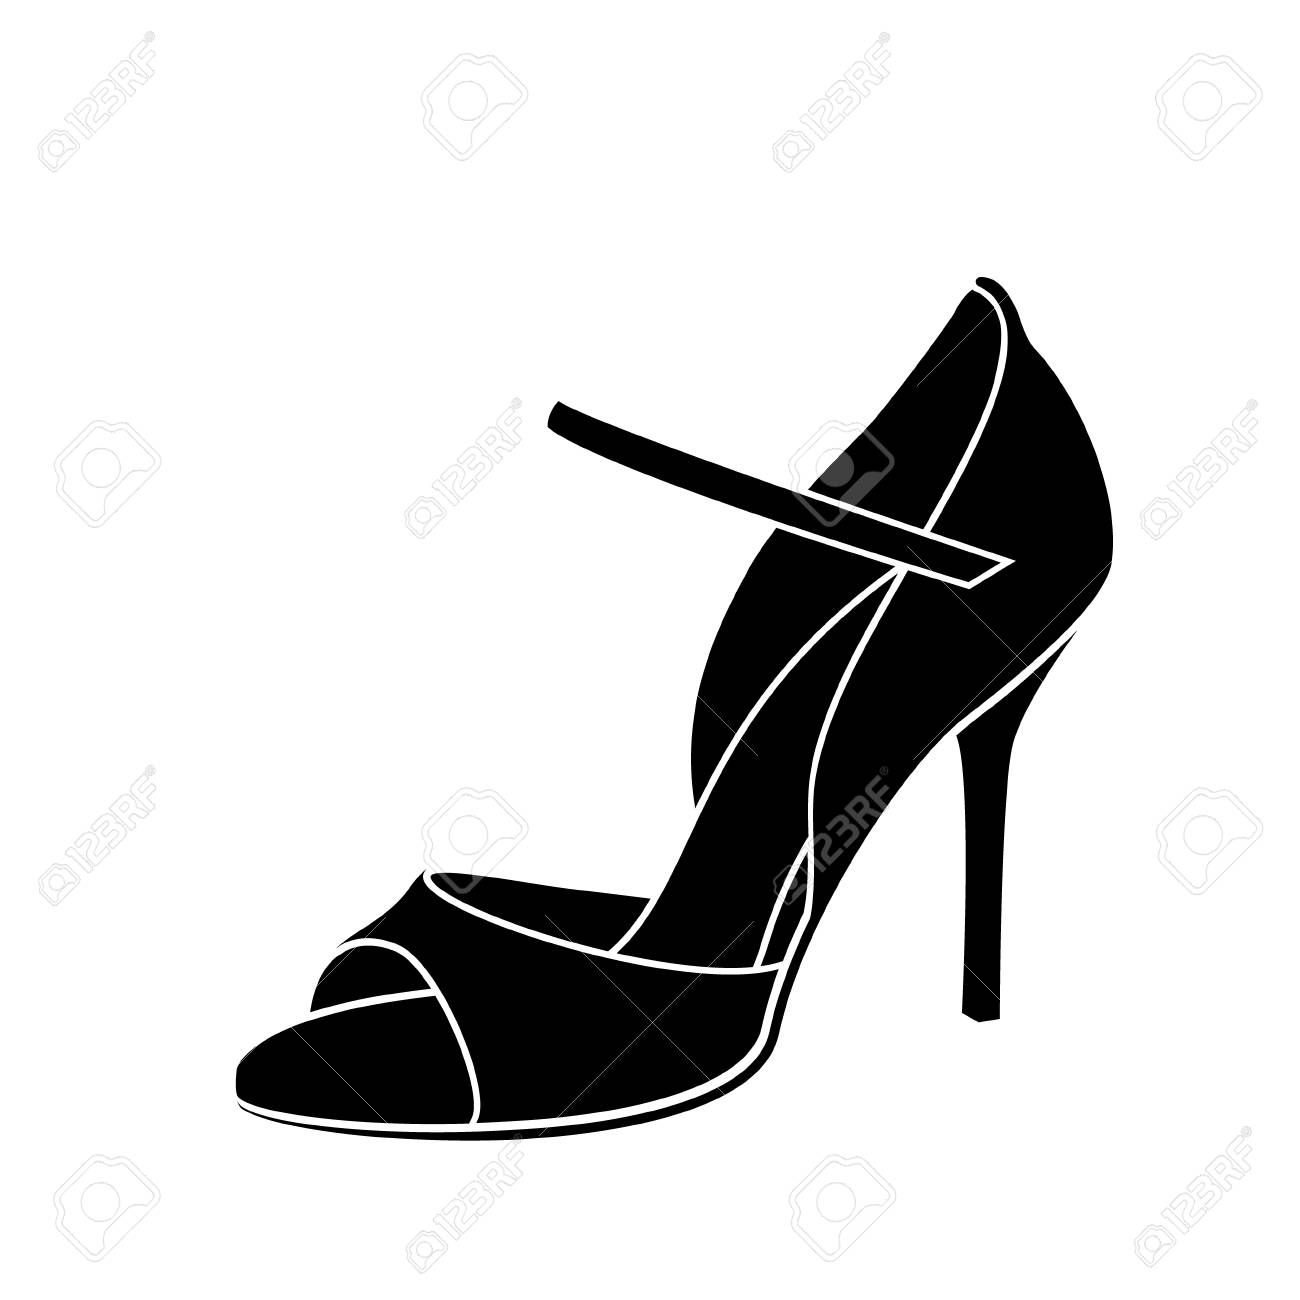 Elegant sketched woman s shoe for Argentine tango dancing. - 108438522